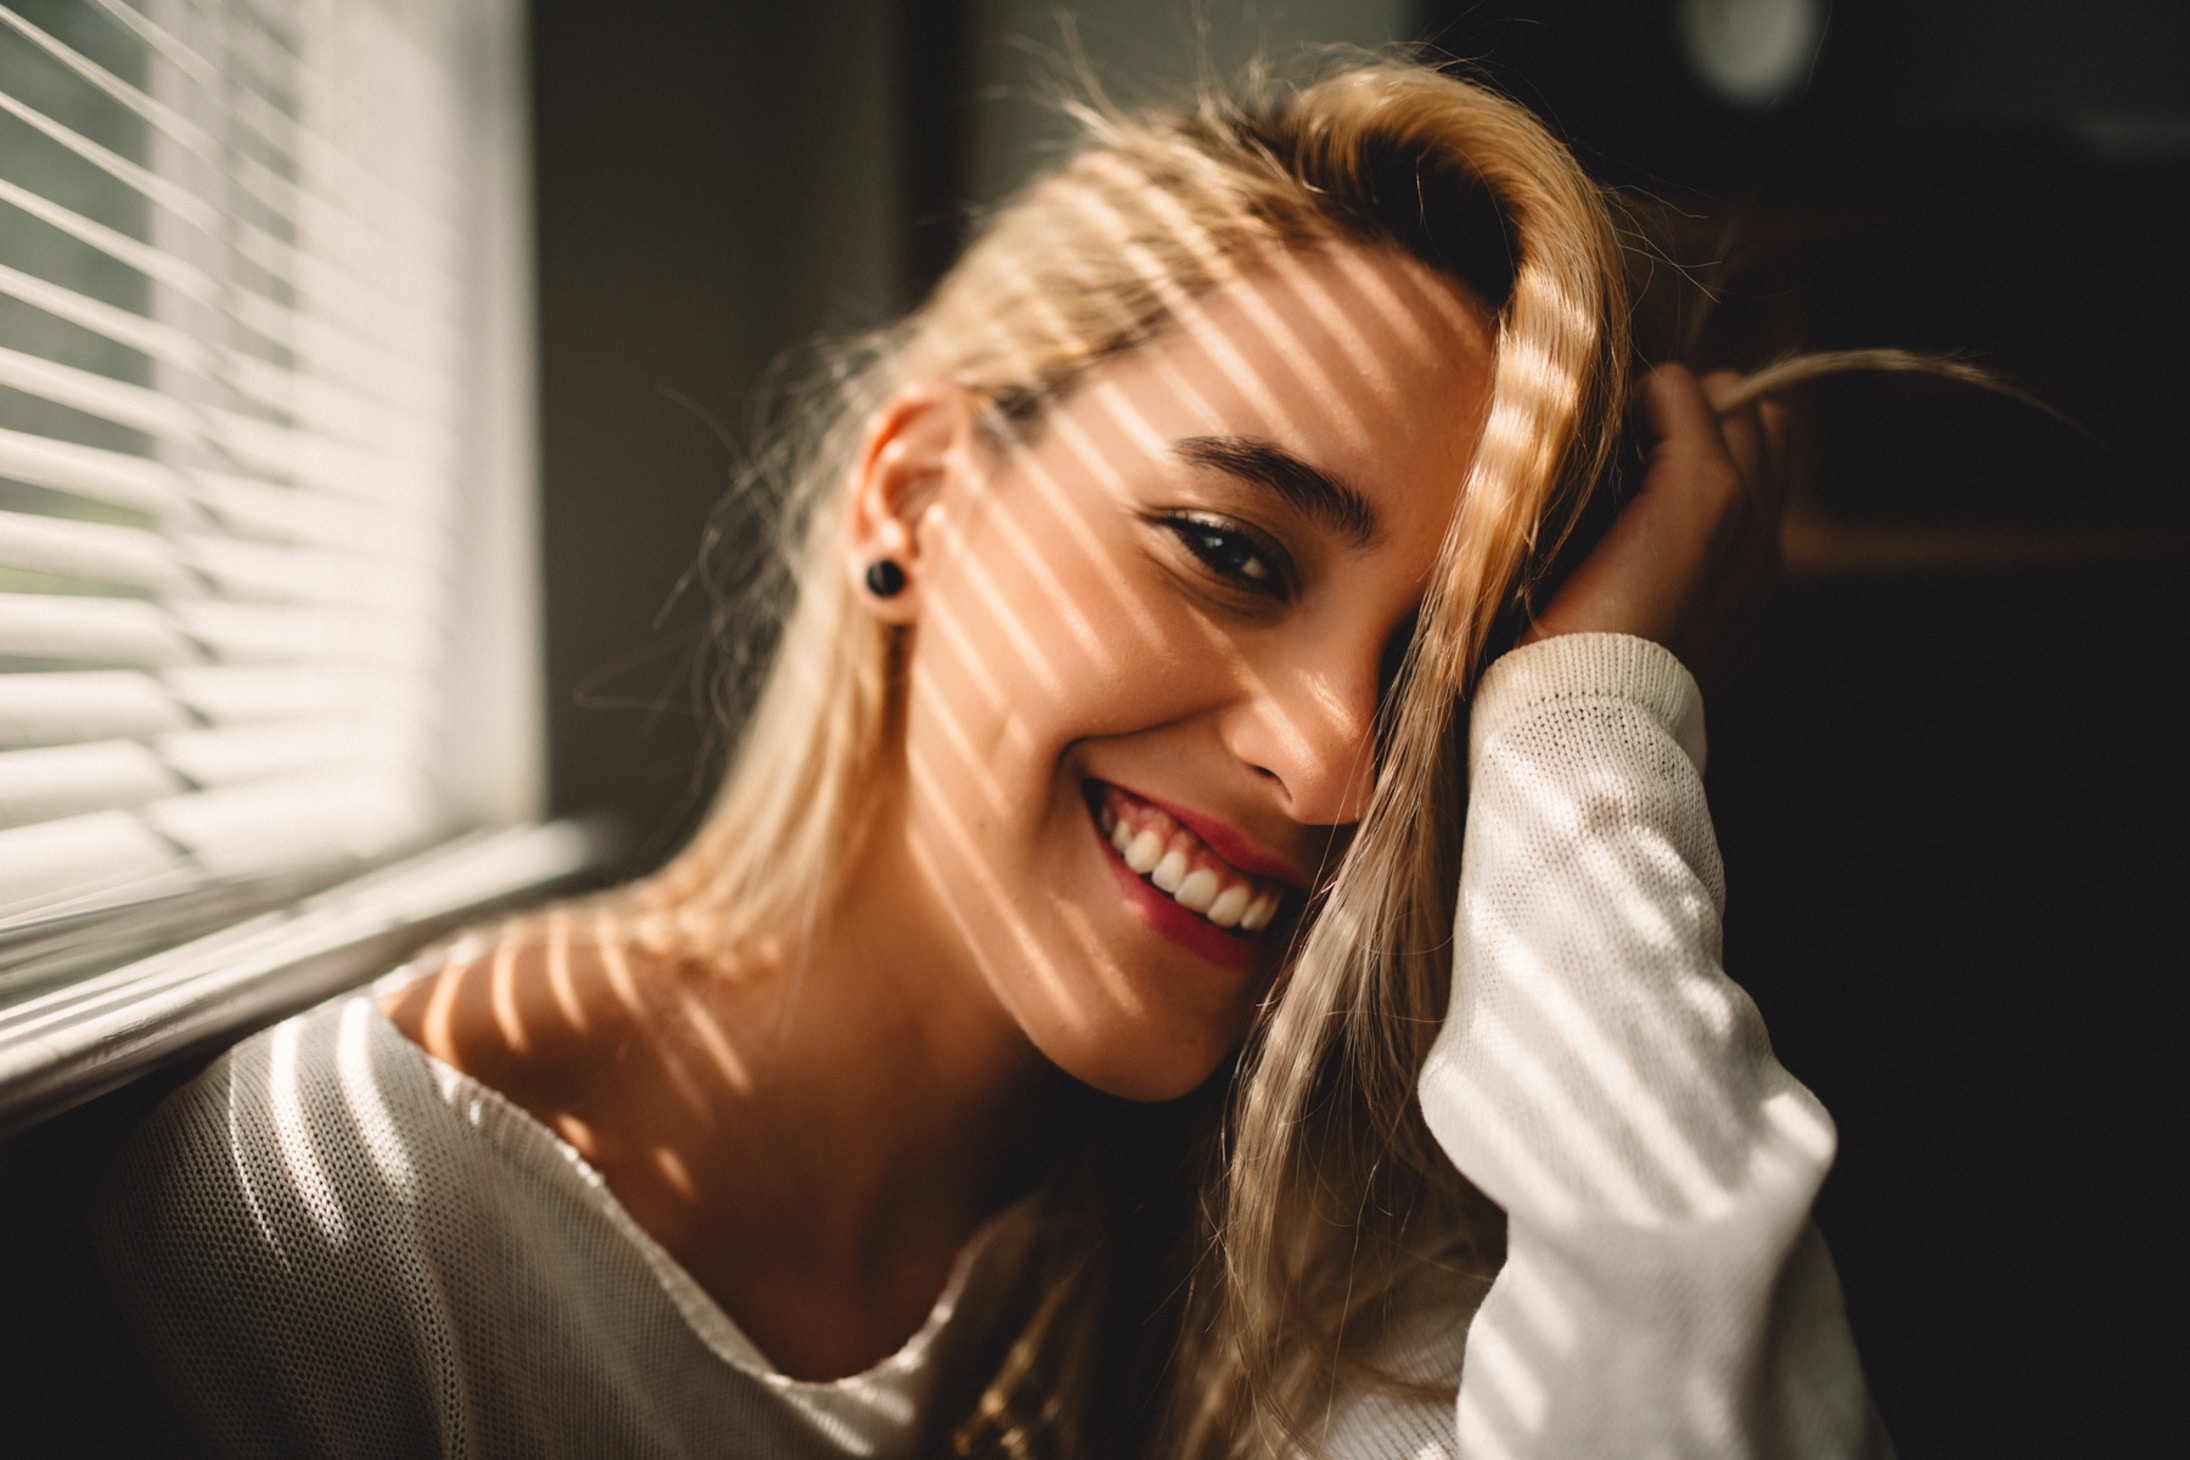 Does Smiling Help with Depression?